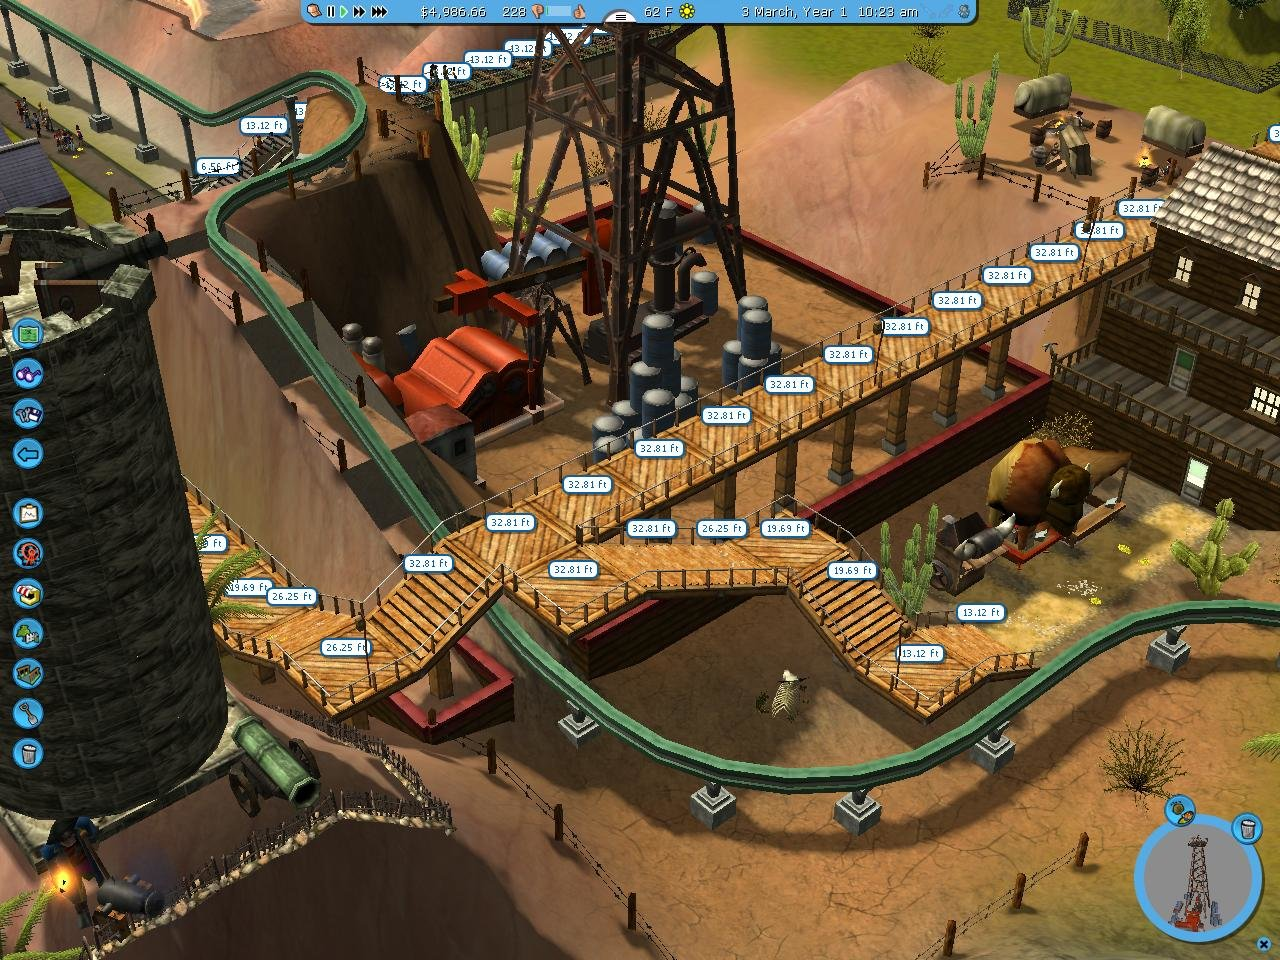 RollerCoaster Tycoon 3 - PC Review and Full Download | Old PC Gaming